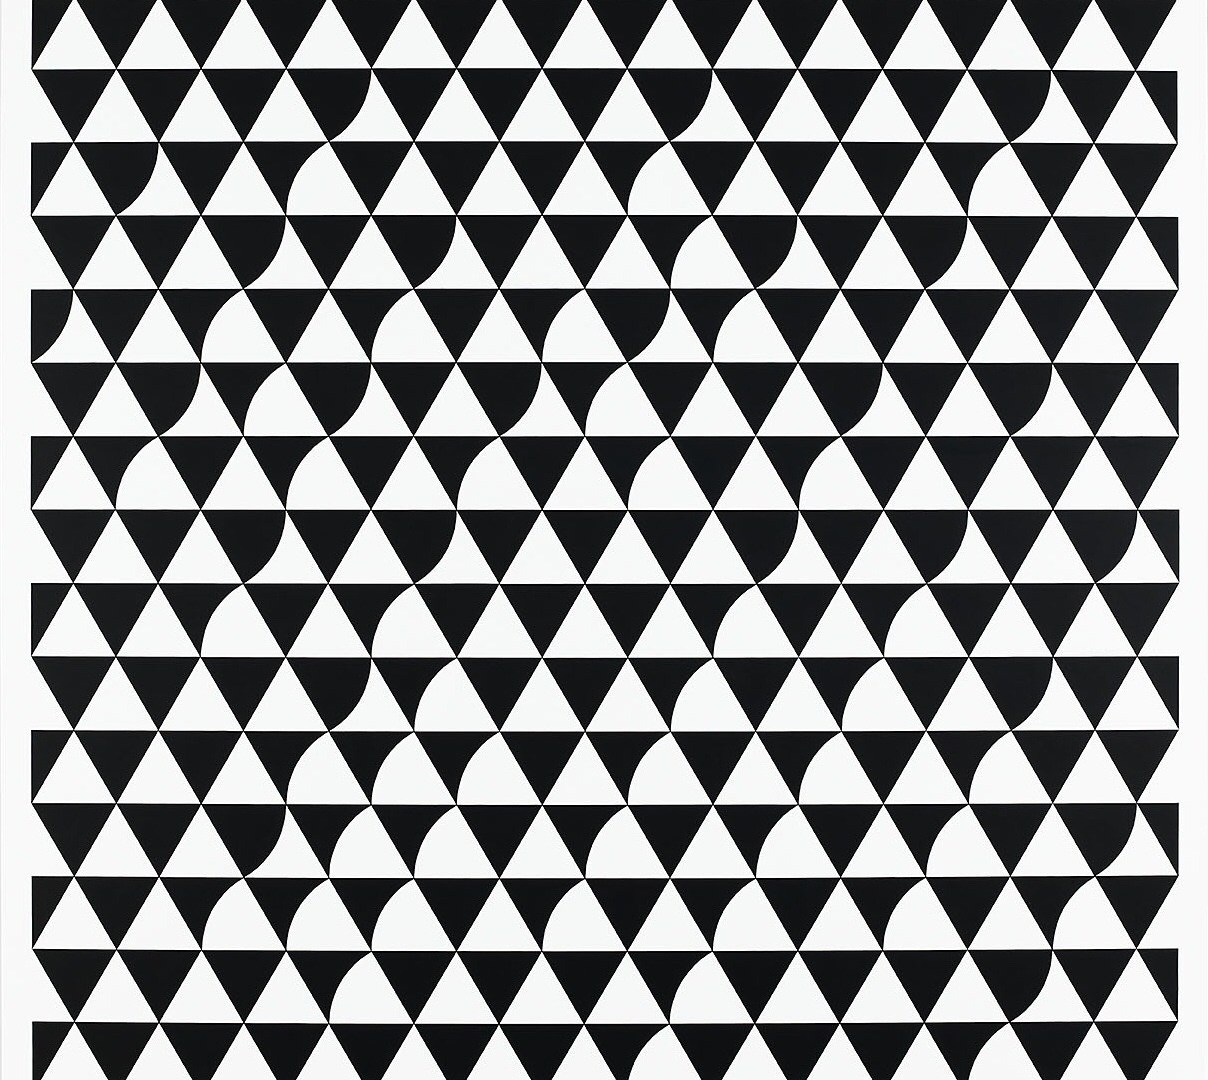 Bridget-Riley-Rustle-2015